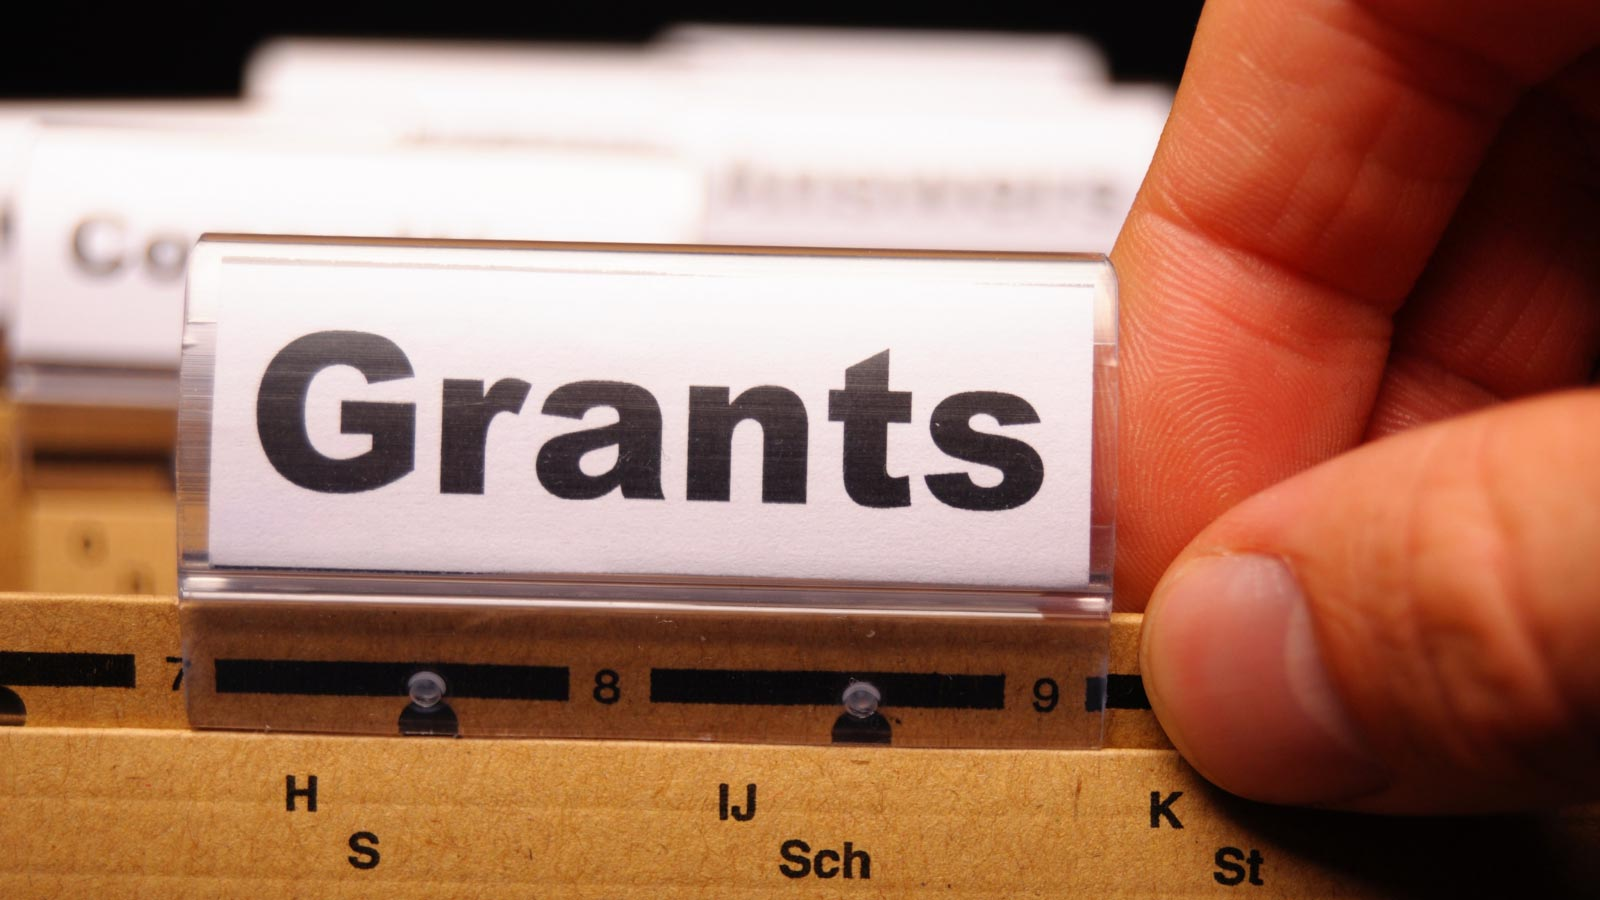 California Relief Grants are available